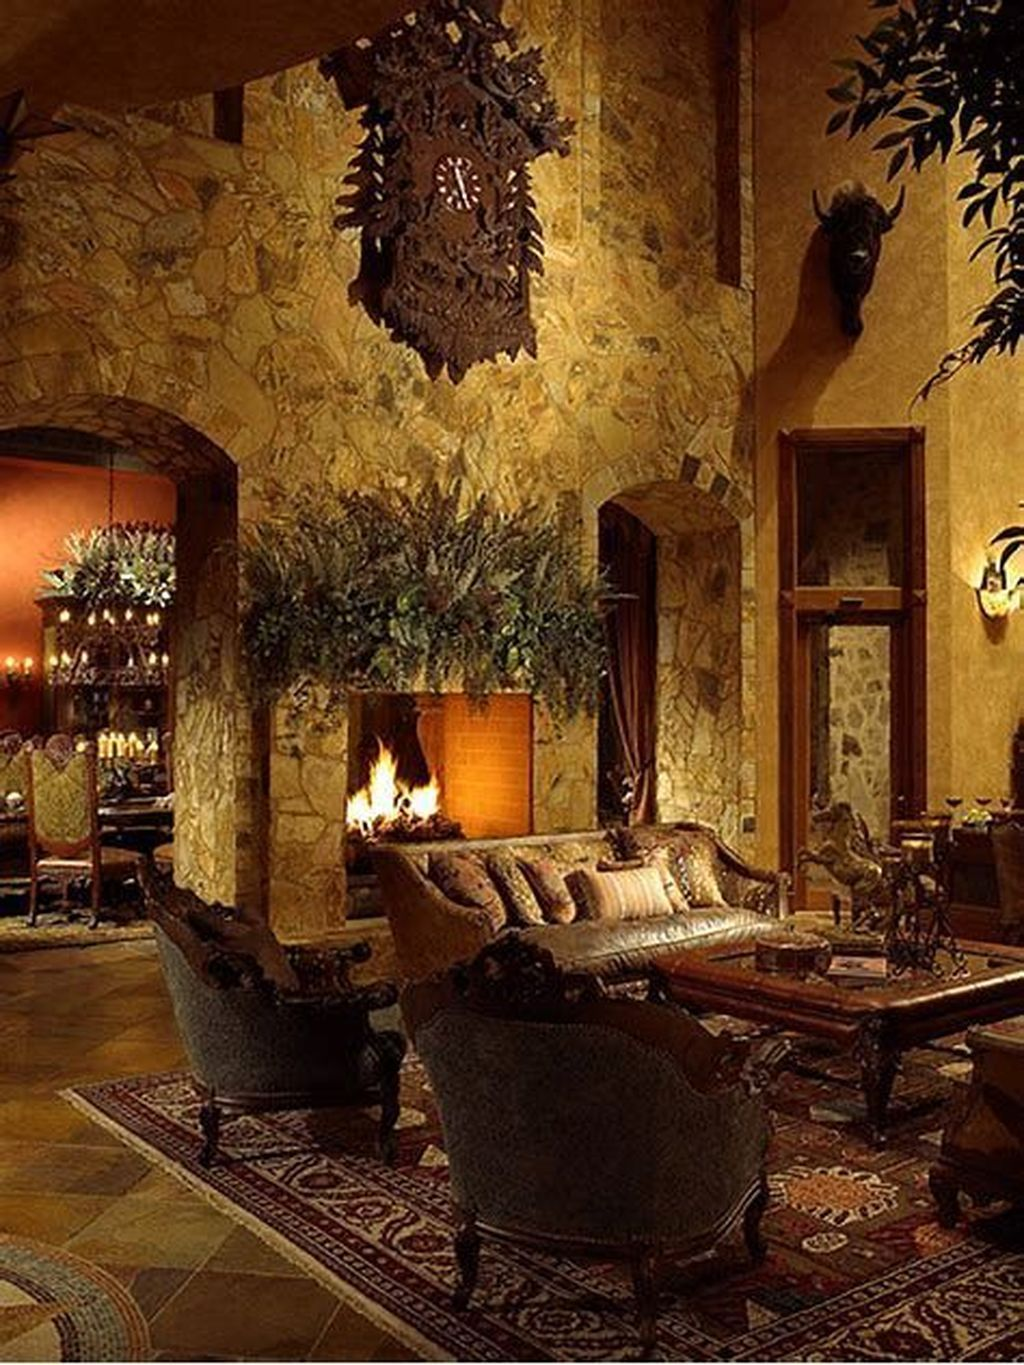 Amazing Lodge Living Room Decorating Ideas 15 Jpg 1024 1365 Tuscan Living Rooms Mediterranean Decor Tuscan Decorating #tuscany #living #room #furniture